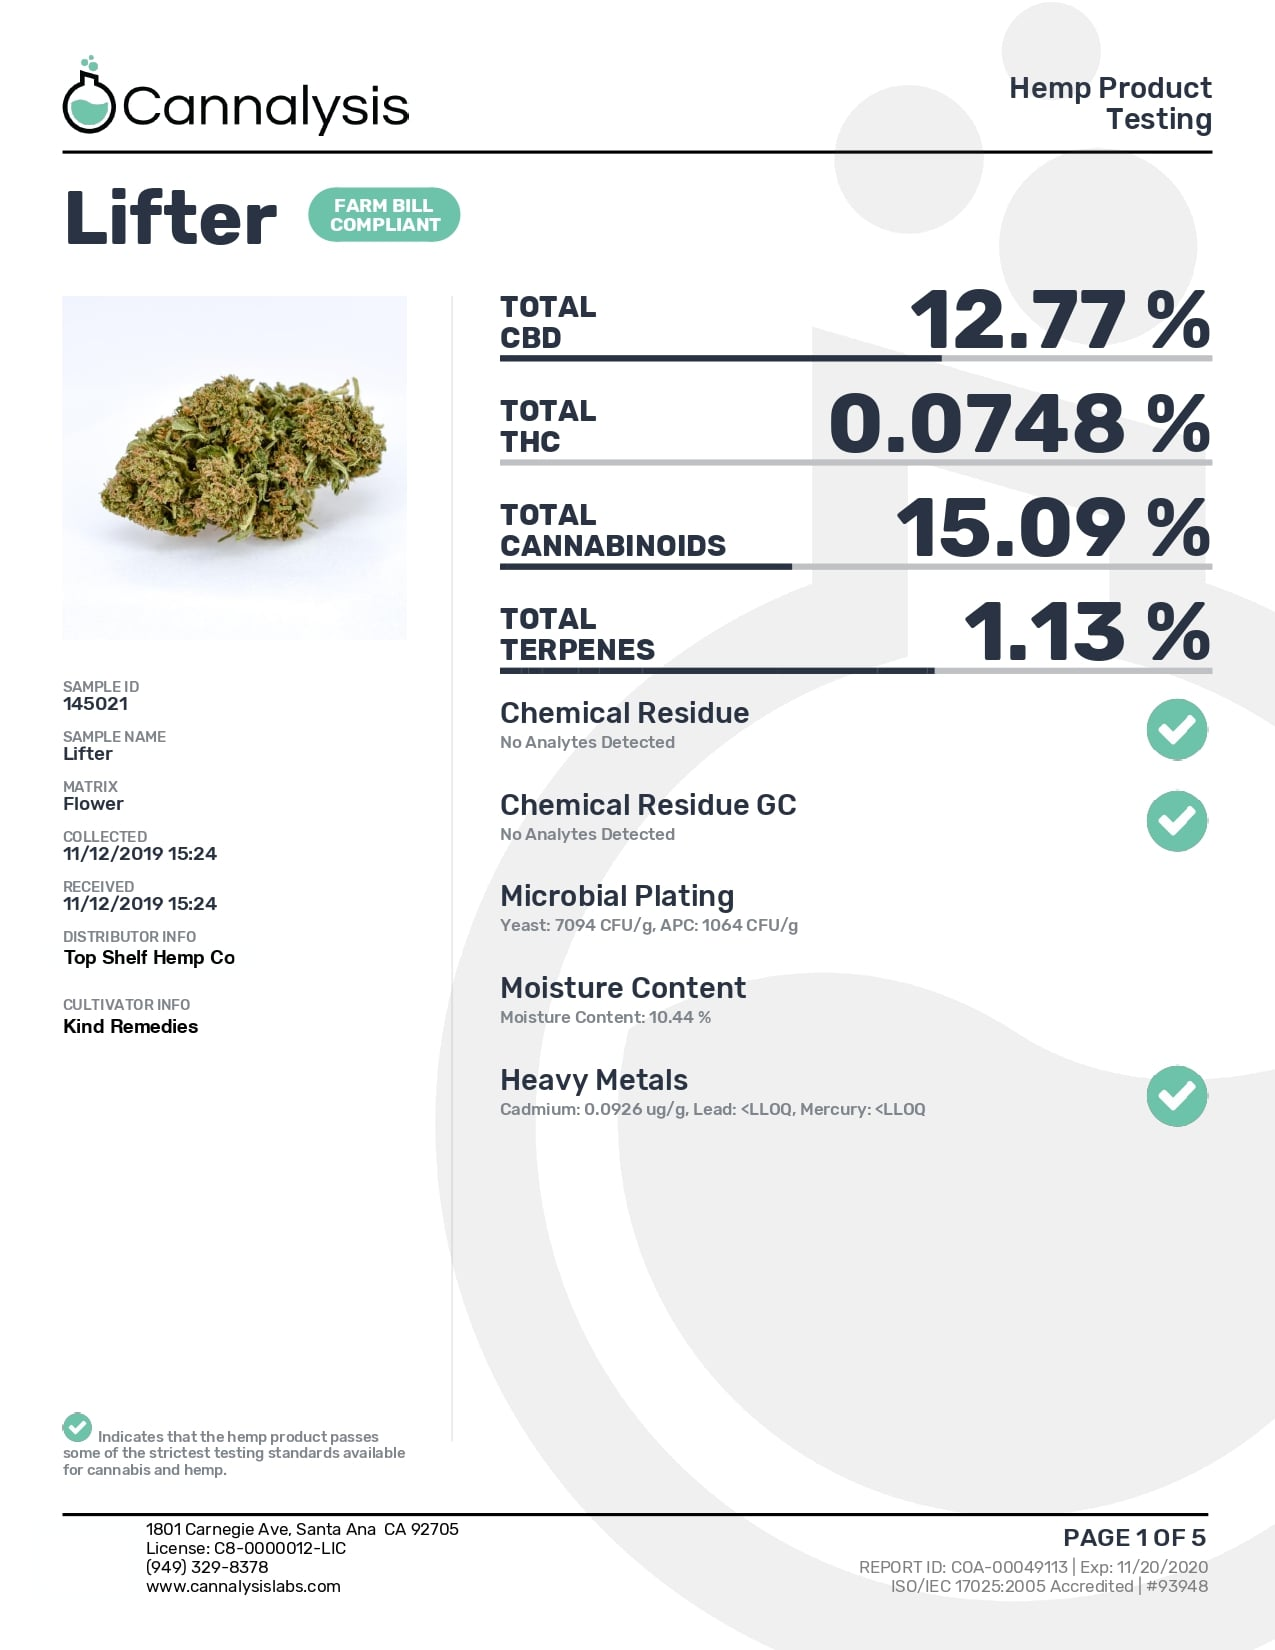 Root Wellness Hemp Transcend Bud Bag 4g Lab Report